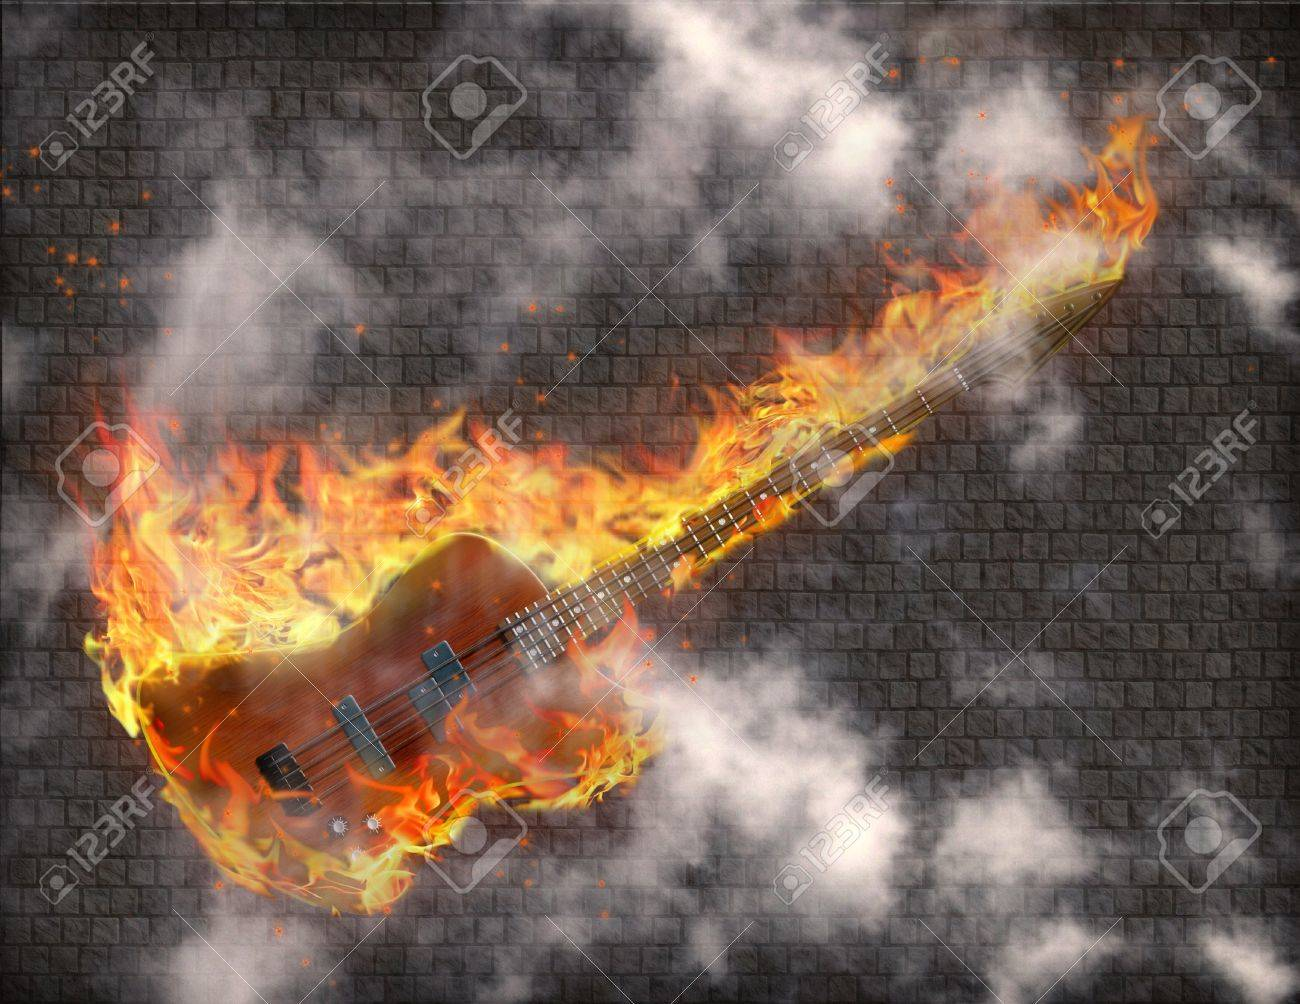 Burning Guitar with smoke against grungy stone wall Stock Photo - 7869861